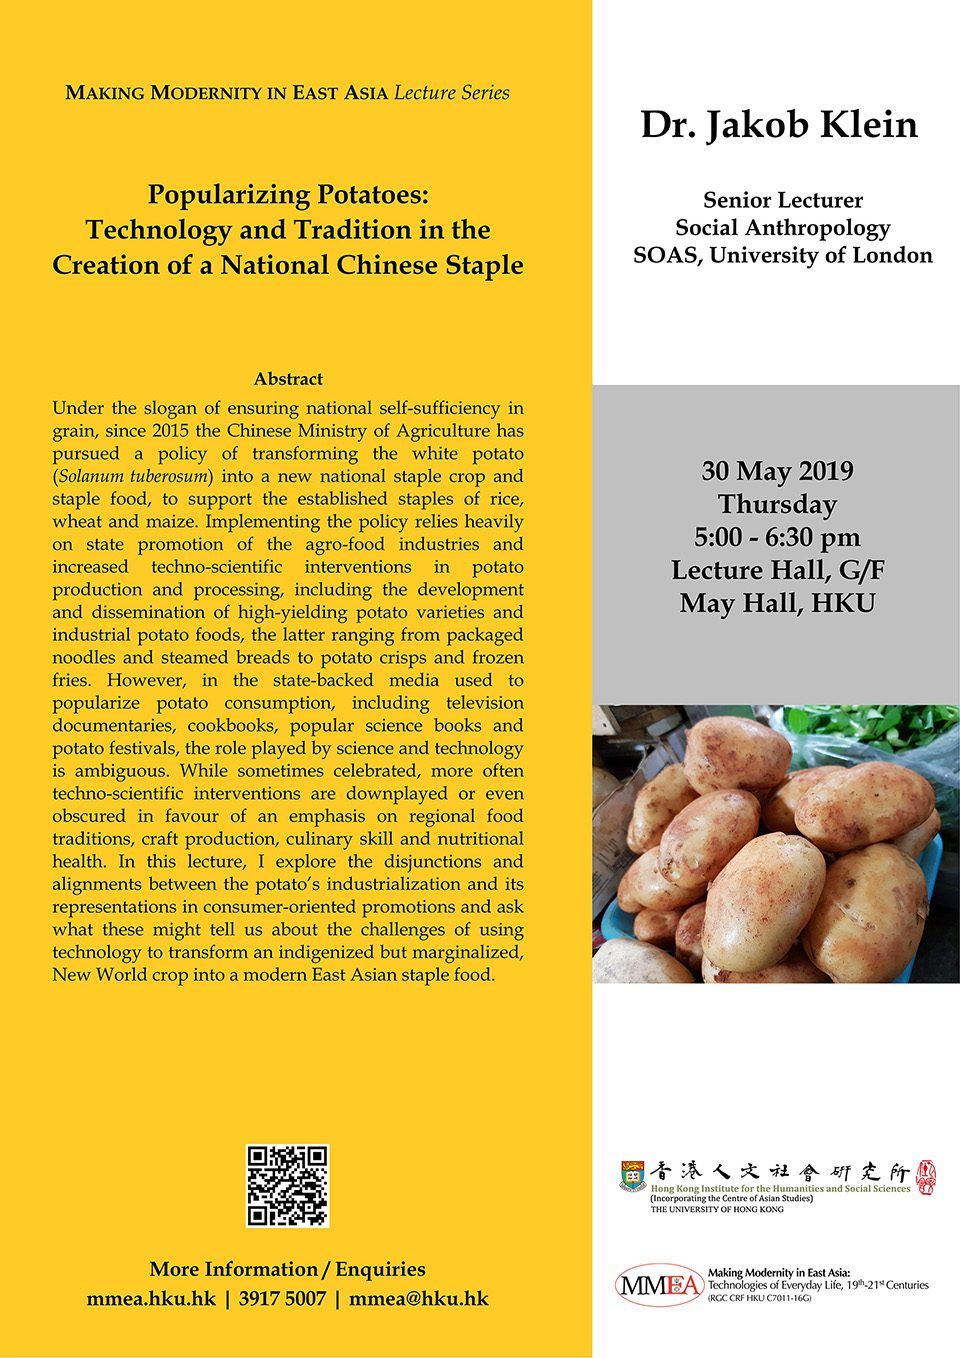 "MMEA Lecture Series ""Popularizing Potatoes: Technology and Tradition in the Creation of a National Chinese Staple"" by Dr. Jakob Klein (May 30, 2019)"